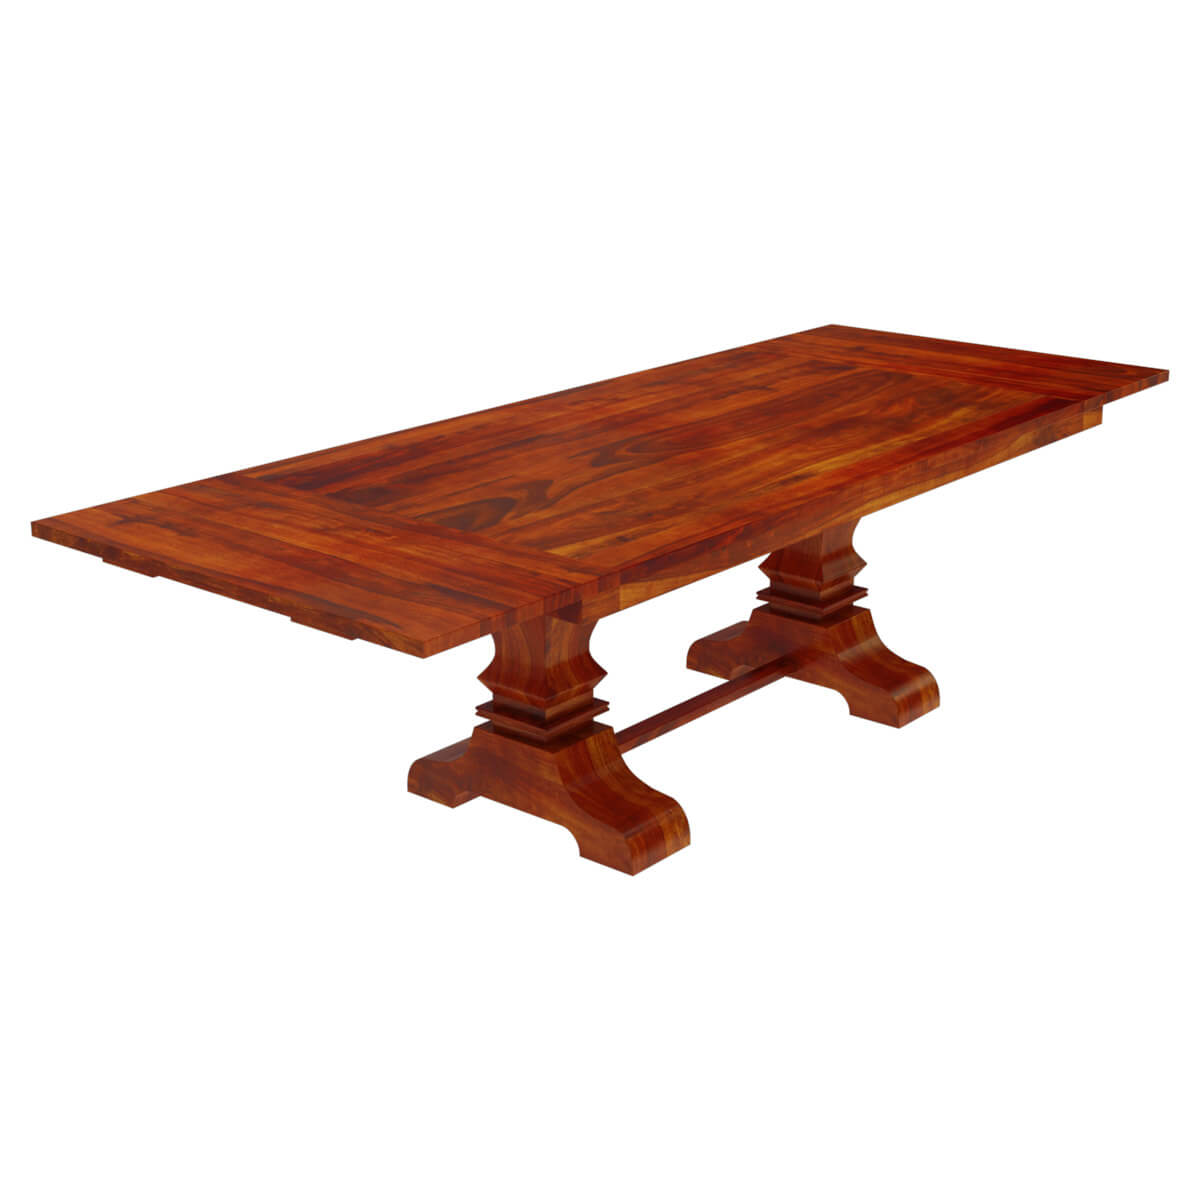 Dining Unfinished Wood Trestle Bench International: Solid Wood Large Trestle Pedestal Dining Table With Extension